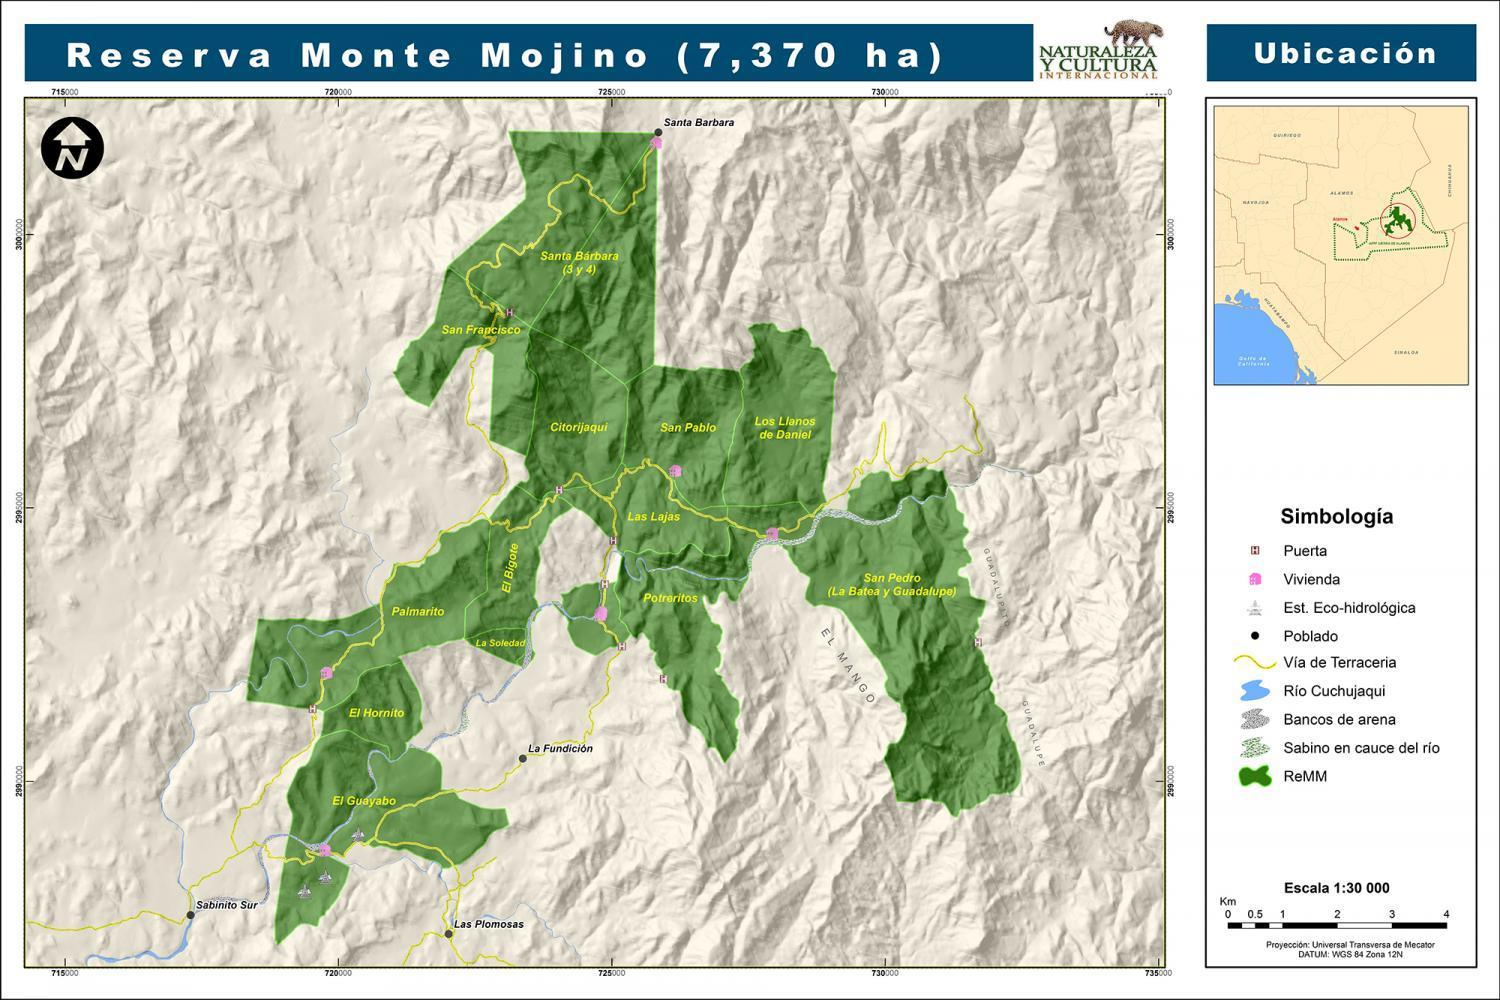 map of the Monte Mojino Reserve